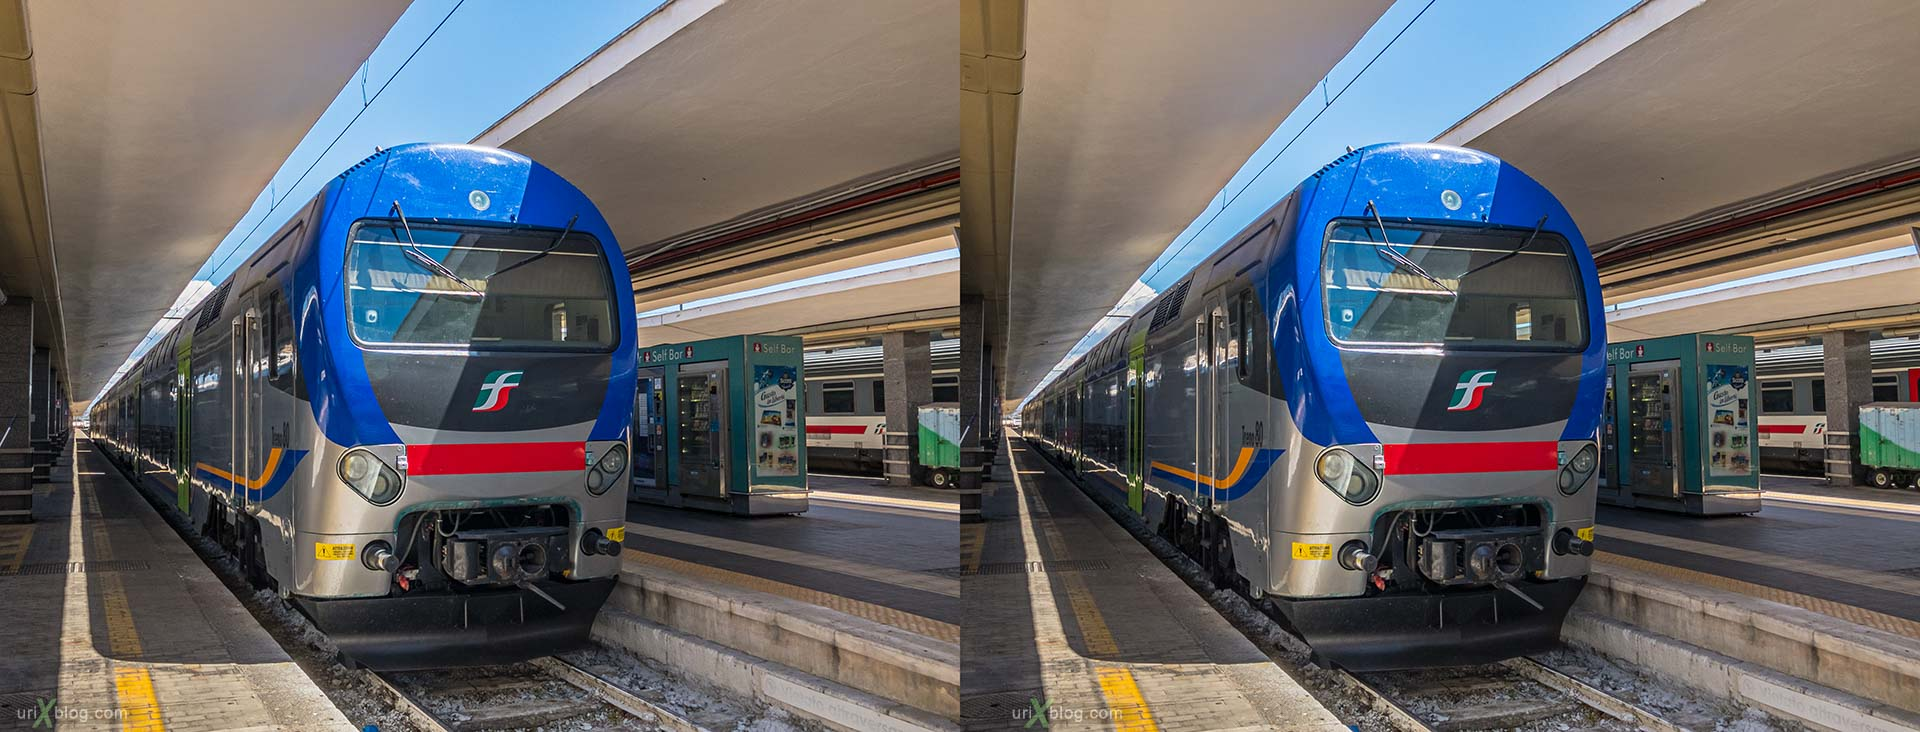 Napoli Centrale, Naples, train station, train, electric locomotive, Italy, 3D, stereo pair, cross-eyed, crossview, cross view stereo pair, stereoscopic